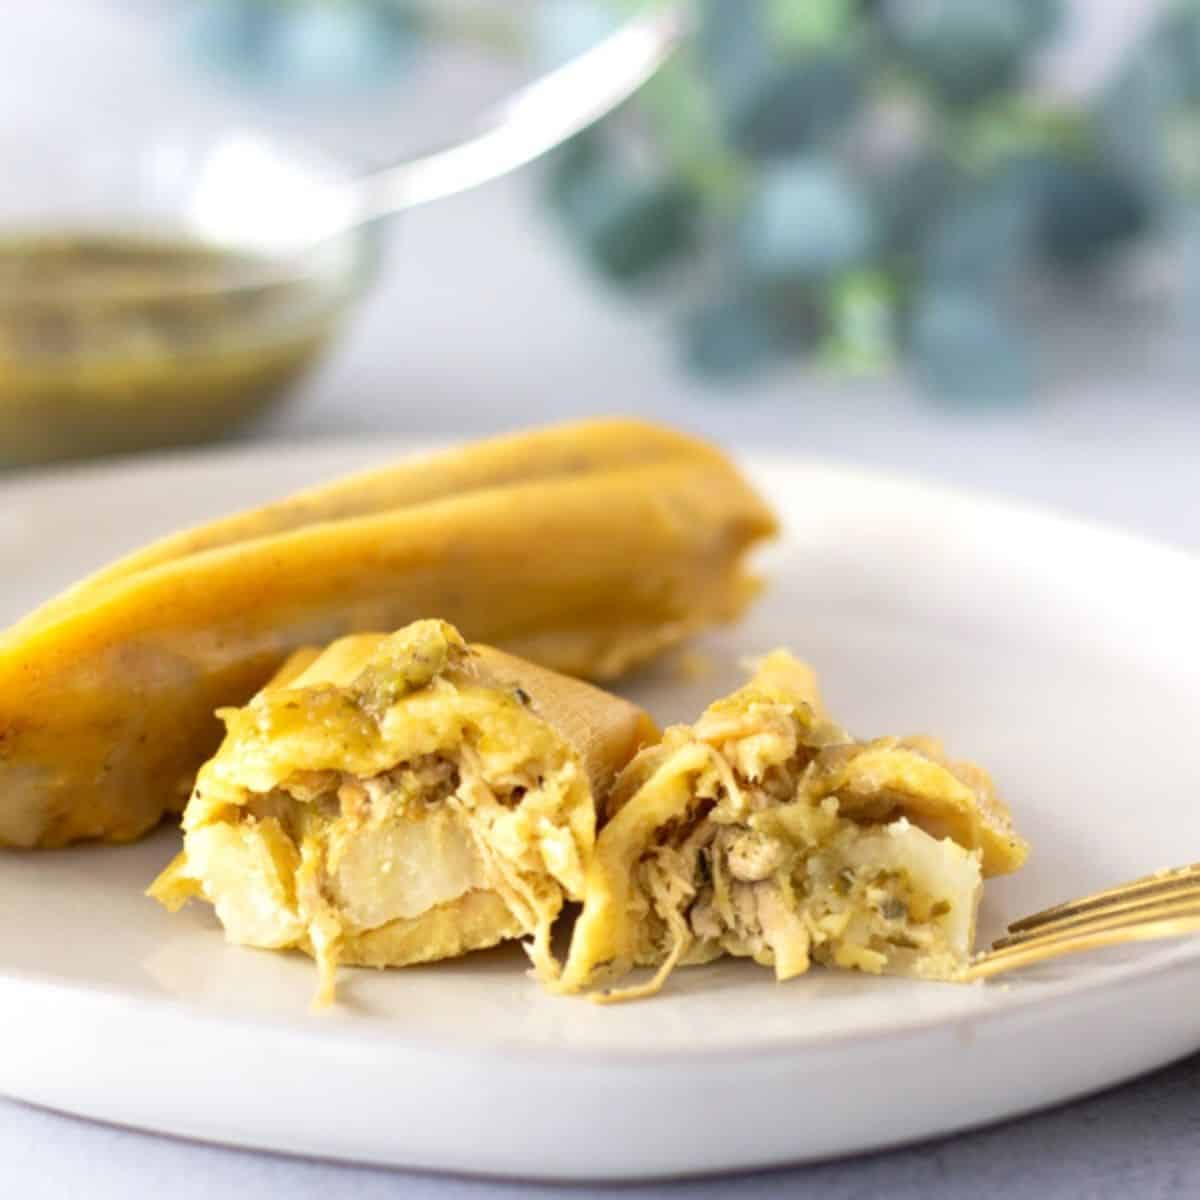 A Tamal on a plate that is cut in half to reveal the chicken filling